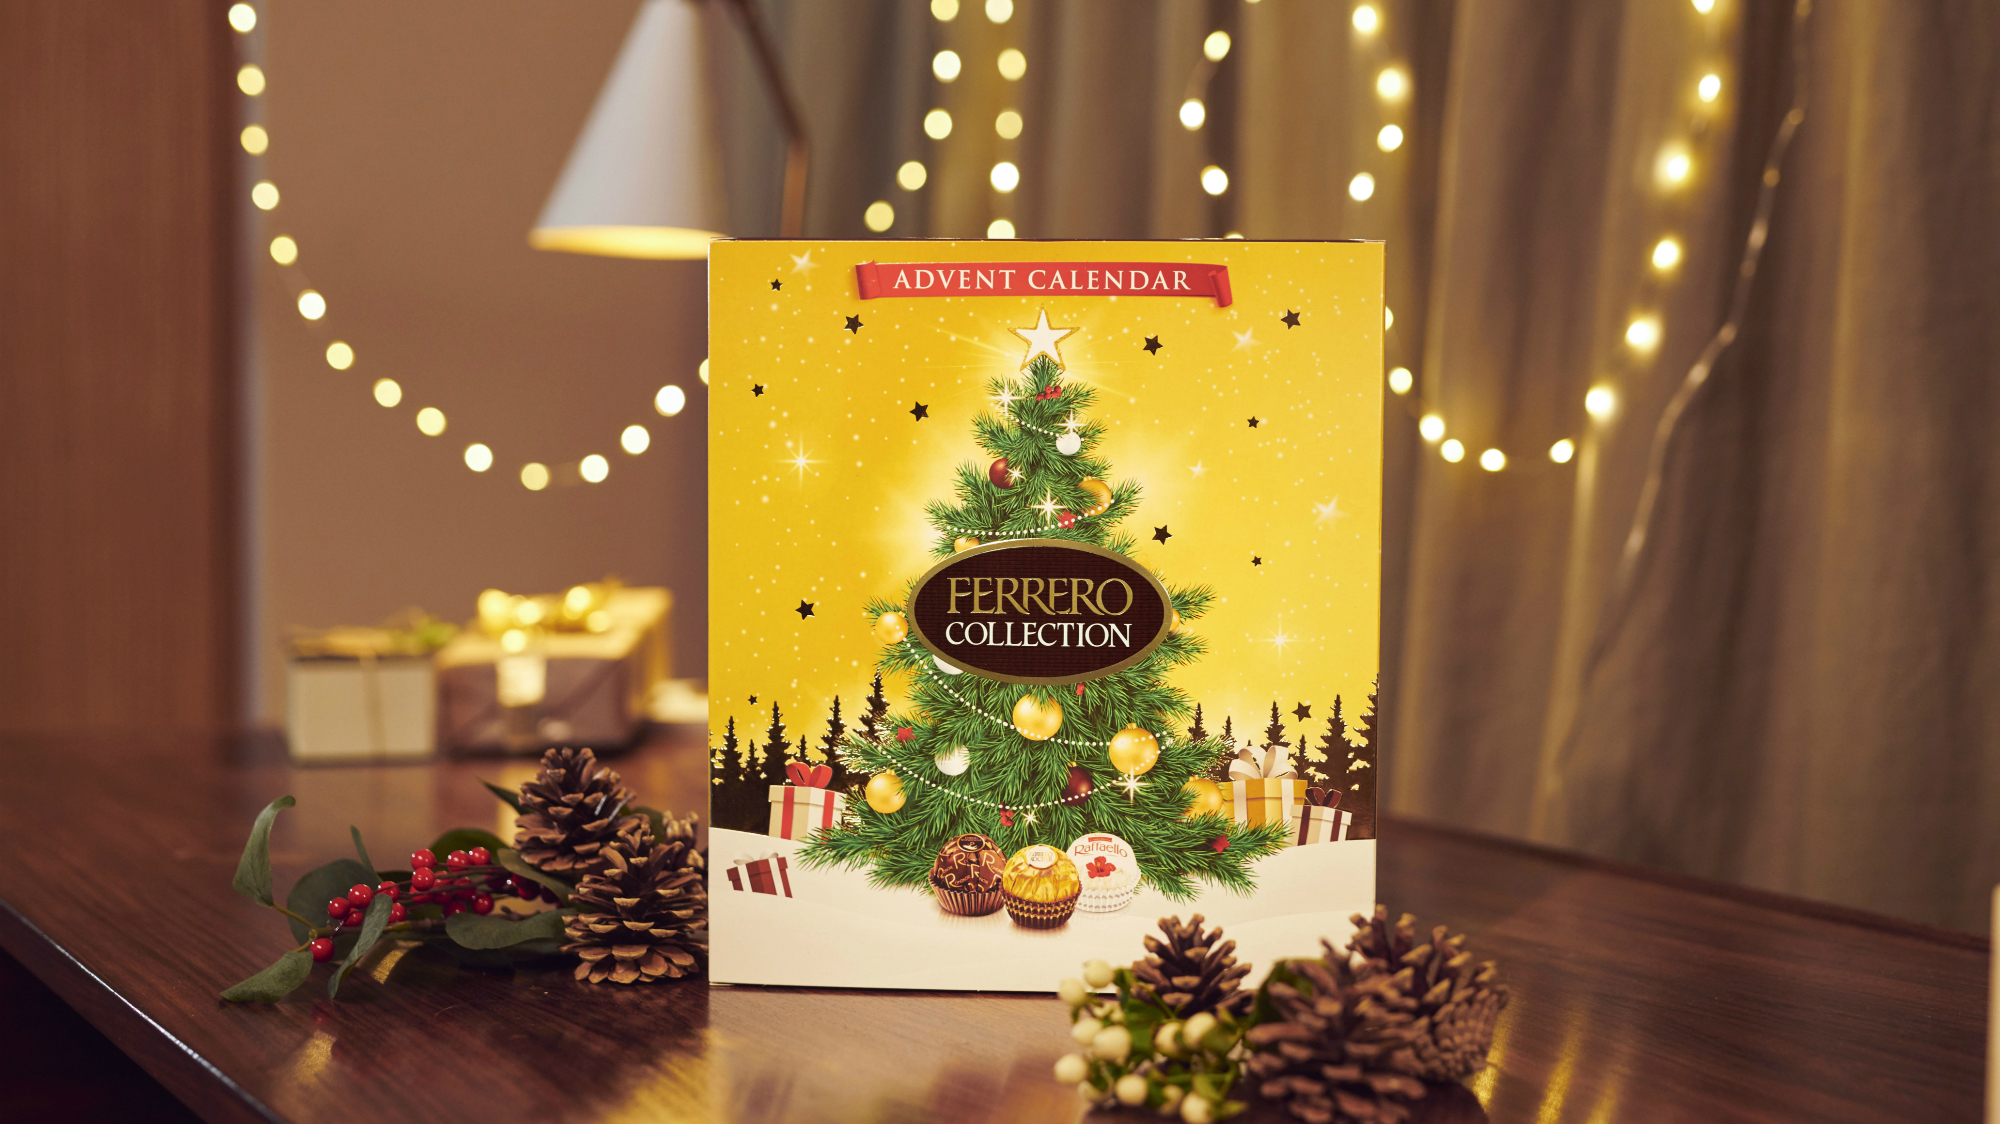 Top 10 chocolate advent calendars you *need* to buy right now